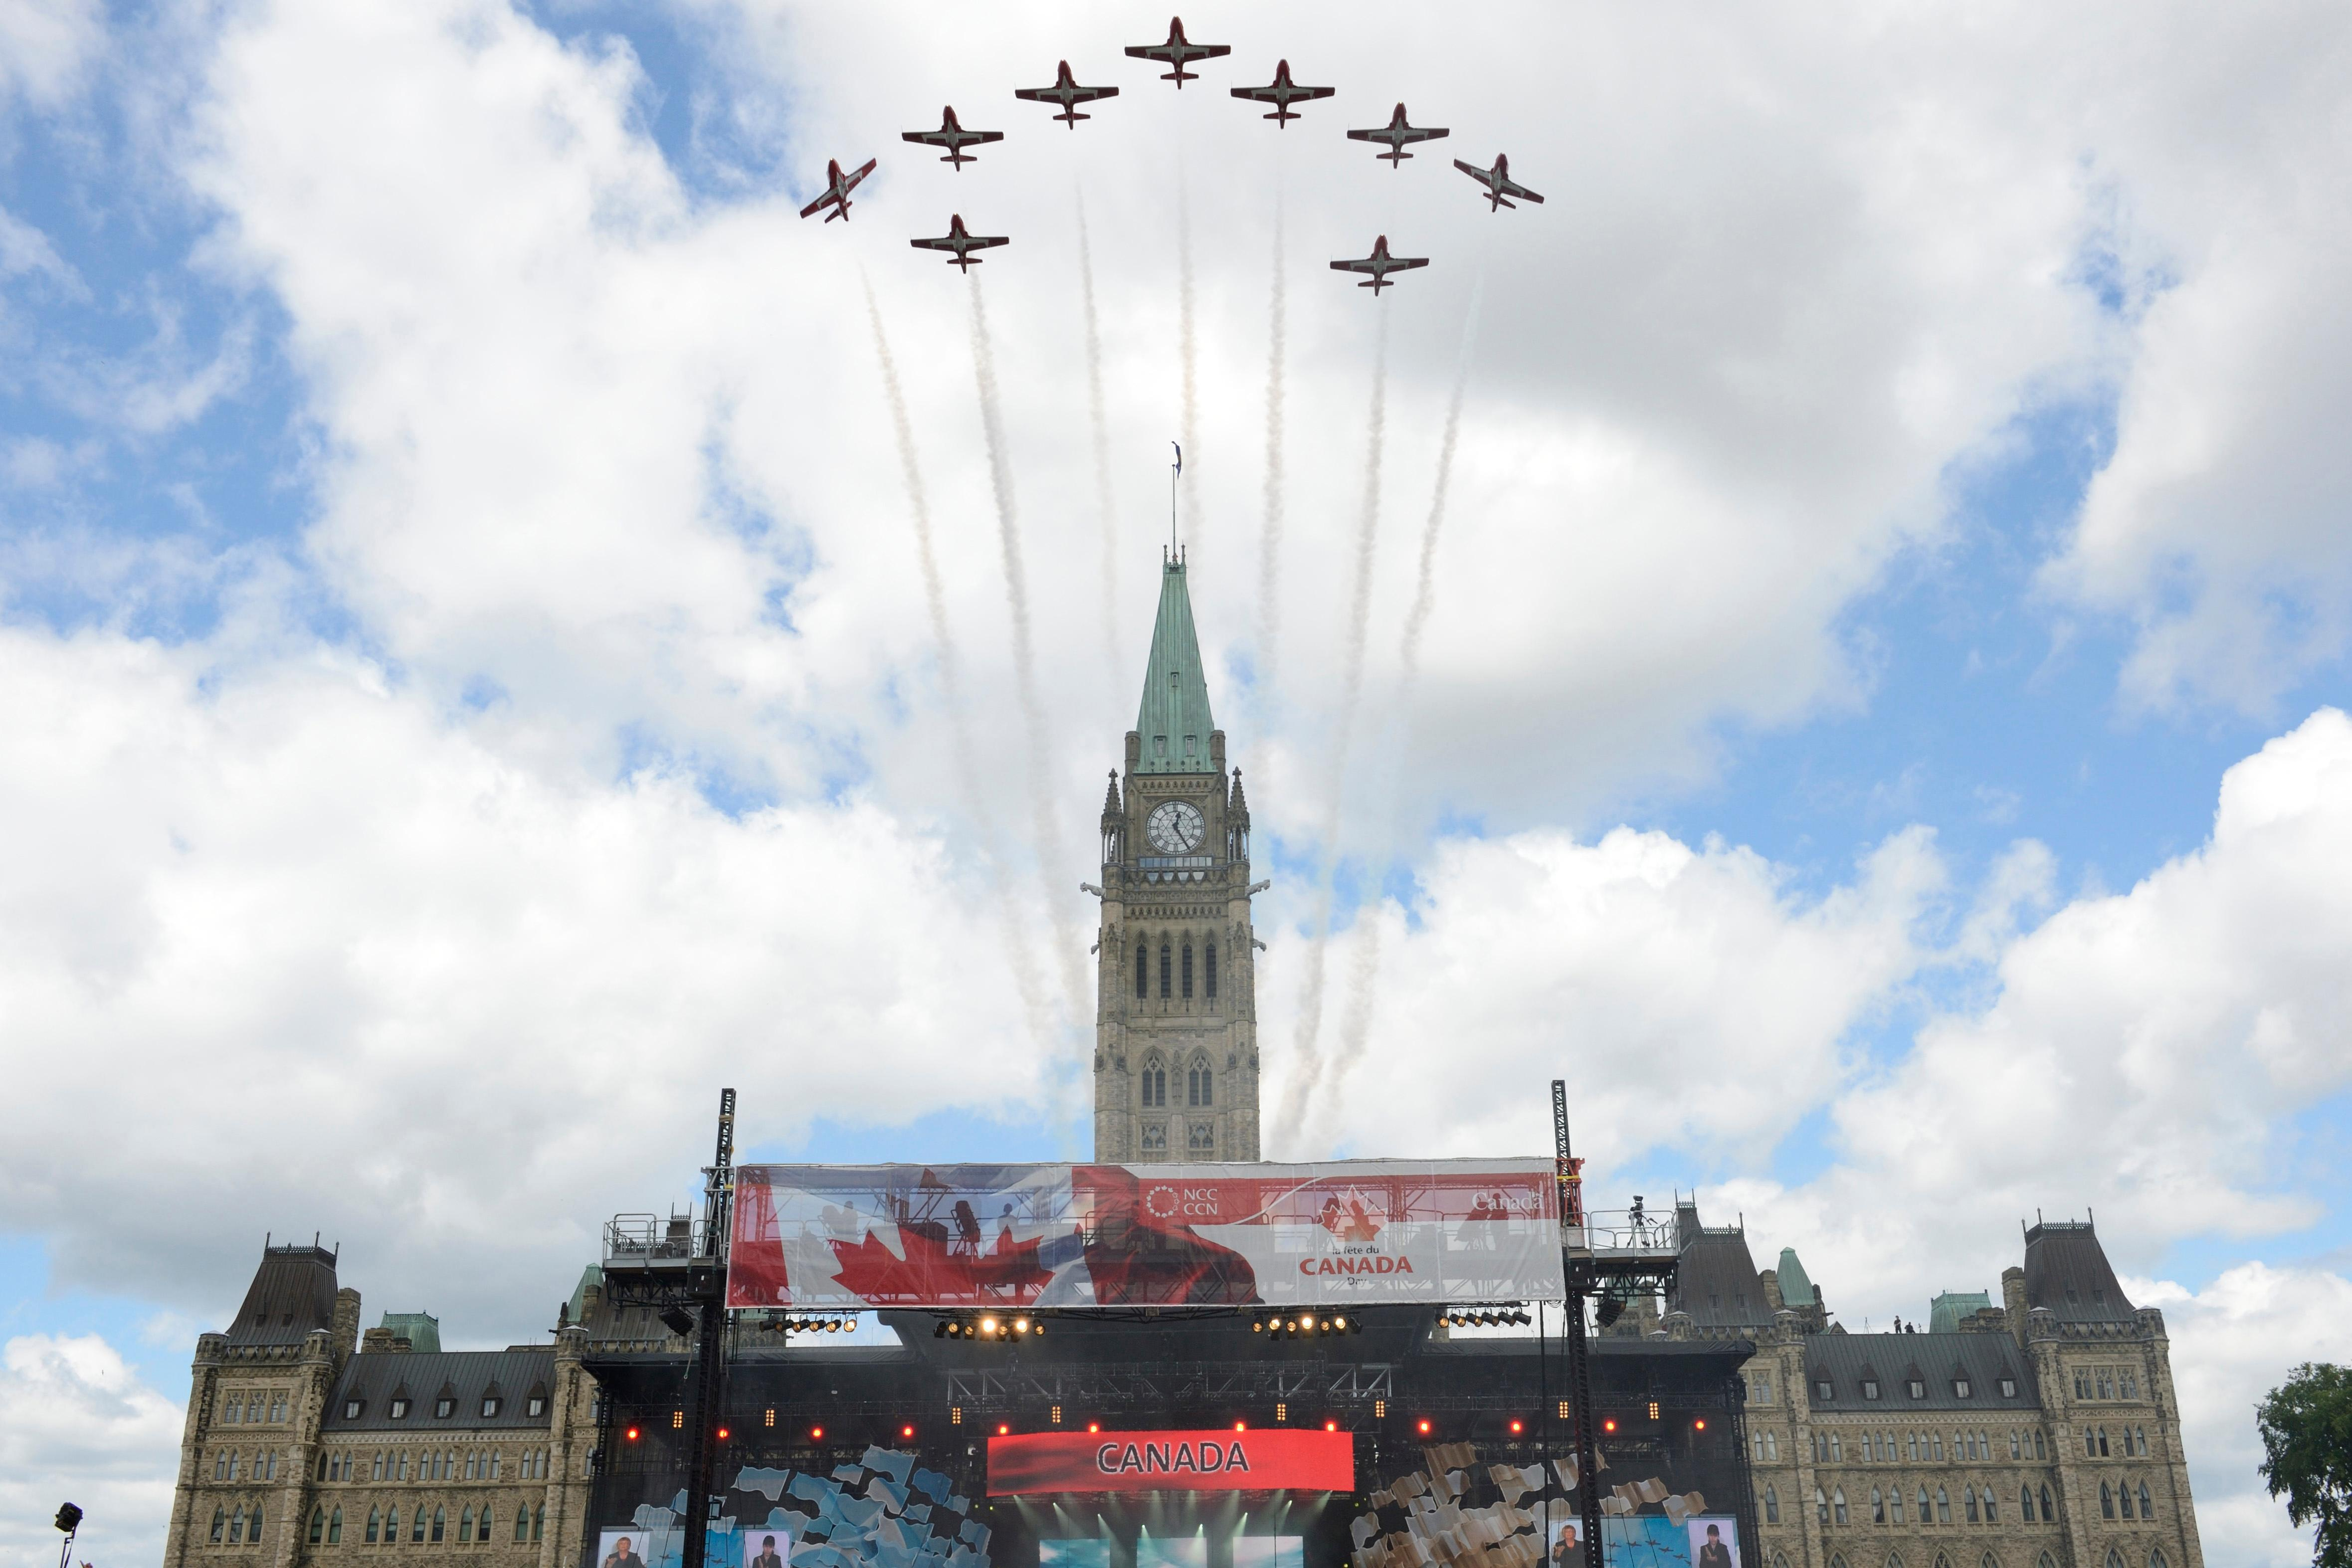 English/AnglaisSU2012-0529-0231 July 2012Ottawa, OntarioThe Canadian Forces Snowbirds Demonstration Team conducts a fly-past above Parliament Hill as part of Canada Day celebrations in Ottawa.Image by Master Corporal Pierre Thriault, CFSU(O) Imaging Services 2012 DND-MDN CanadaFrench/FranaisSU2012-0529-0231er juillet 2012Ottawa (Ontario)Les Snowbirds, lquipe de dmonstration des Forces canadiennes, excutent un dfil arien au-dessus de la Colline du Parlement,  Ottawa,  loccasion de la fte du Canada.Photo : Caporal-chef Pierre Thriault, Services dimagerie de lUSFC(O),  2012 DND-MDN Canada